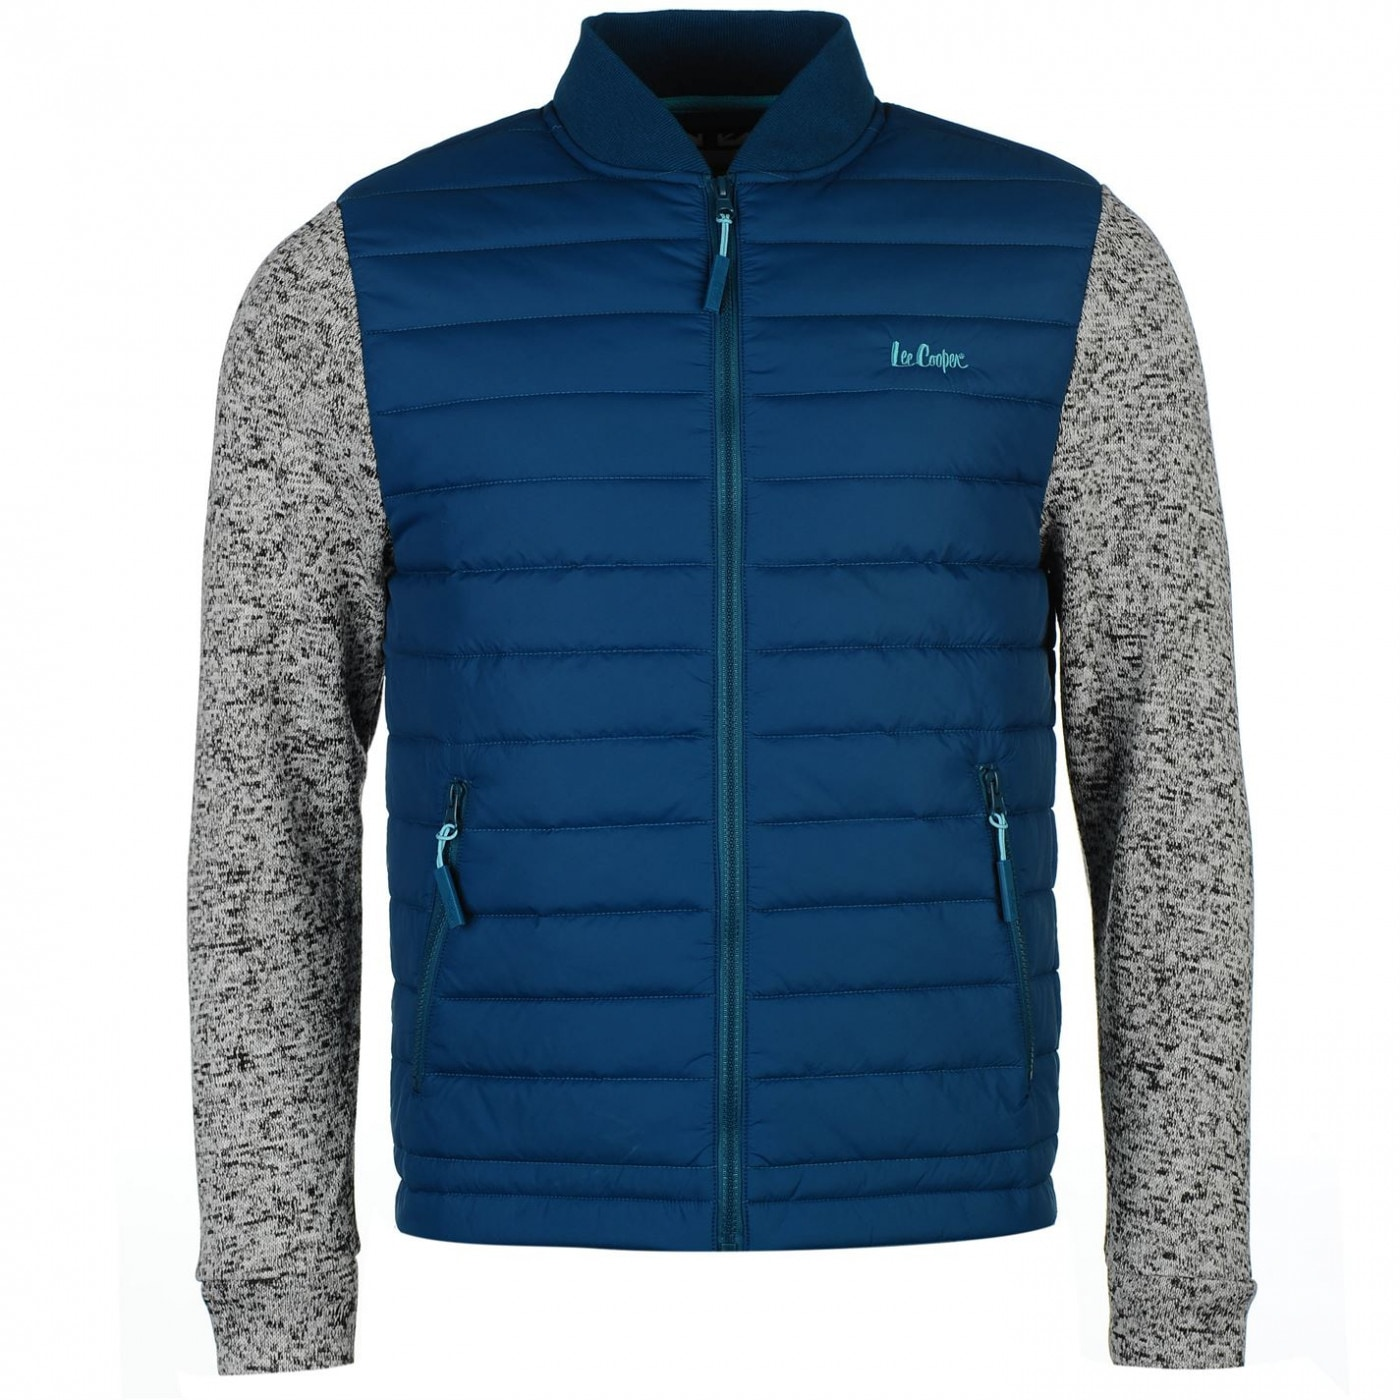 7db0fa5a9 Lee Cooper Padded Knit Bomber Jacket Mens - FACTCOOL